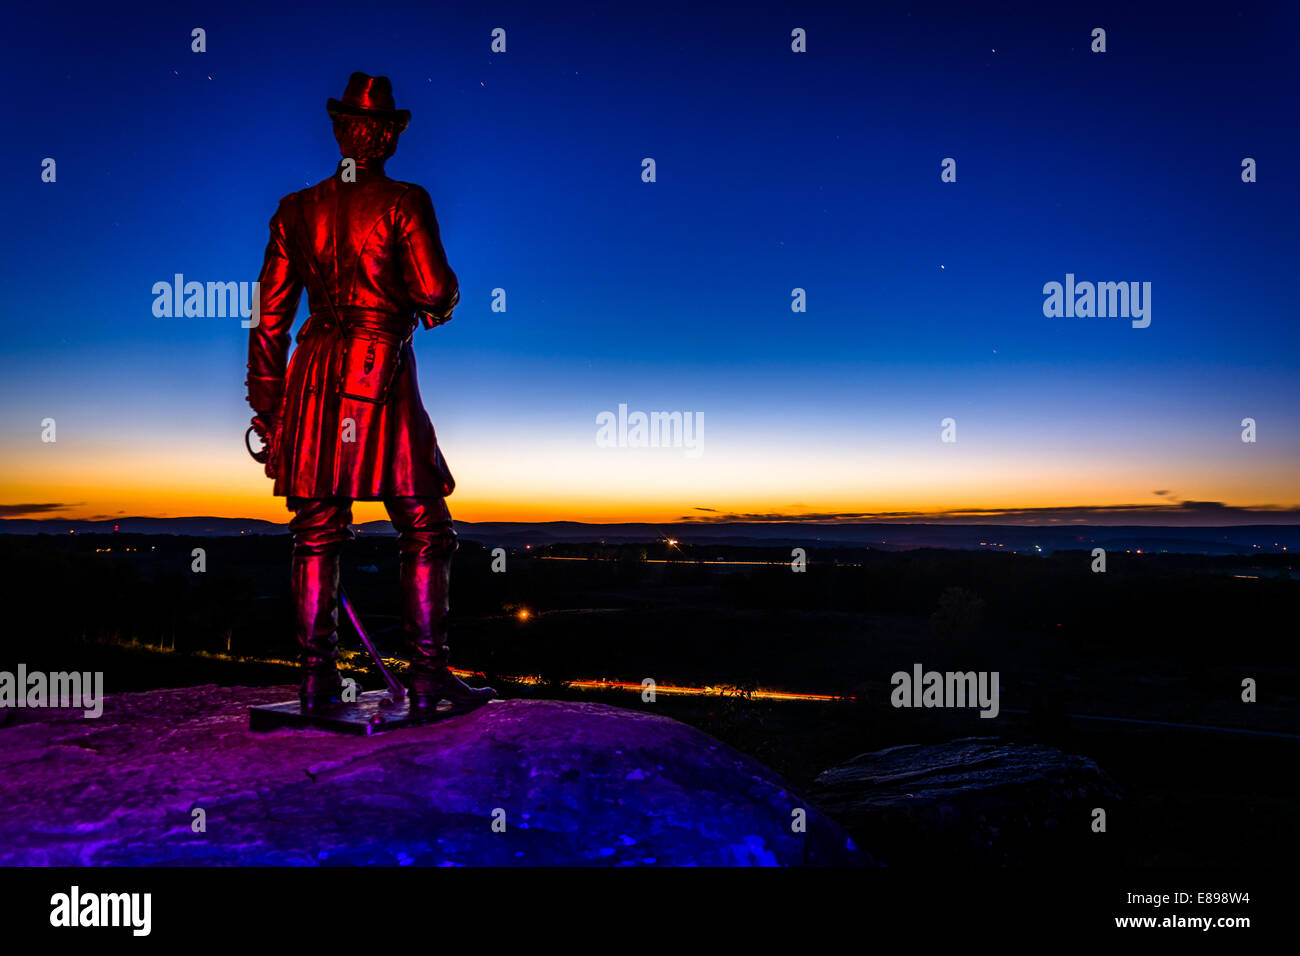 Light-painted statue at night on Little Round Top in Gettysburg, Pennsylvania. - Stock Image